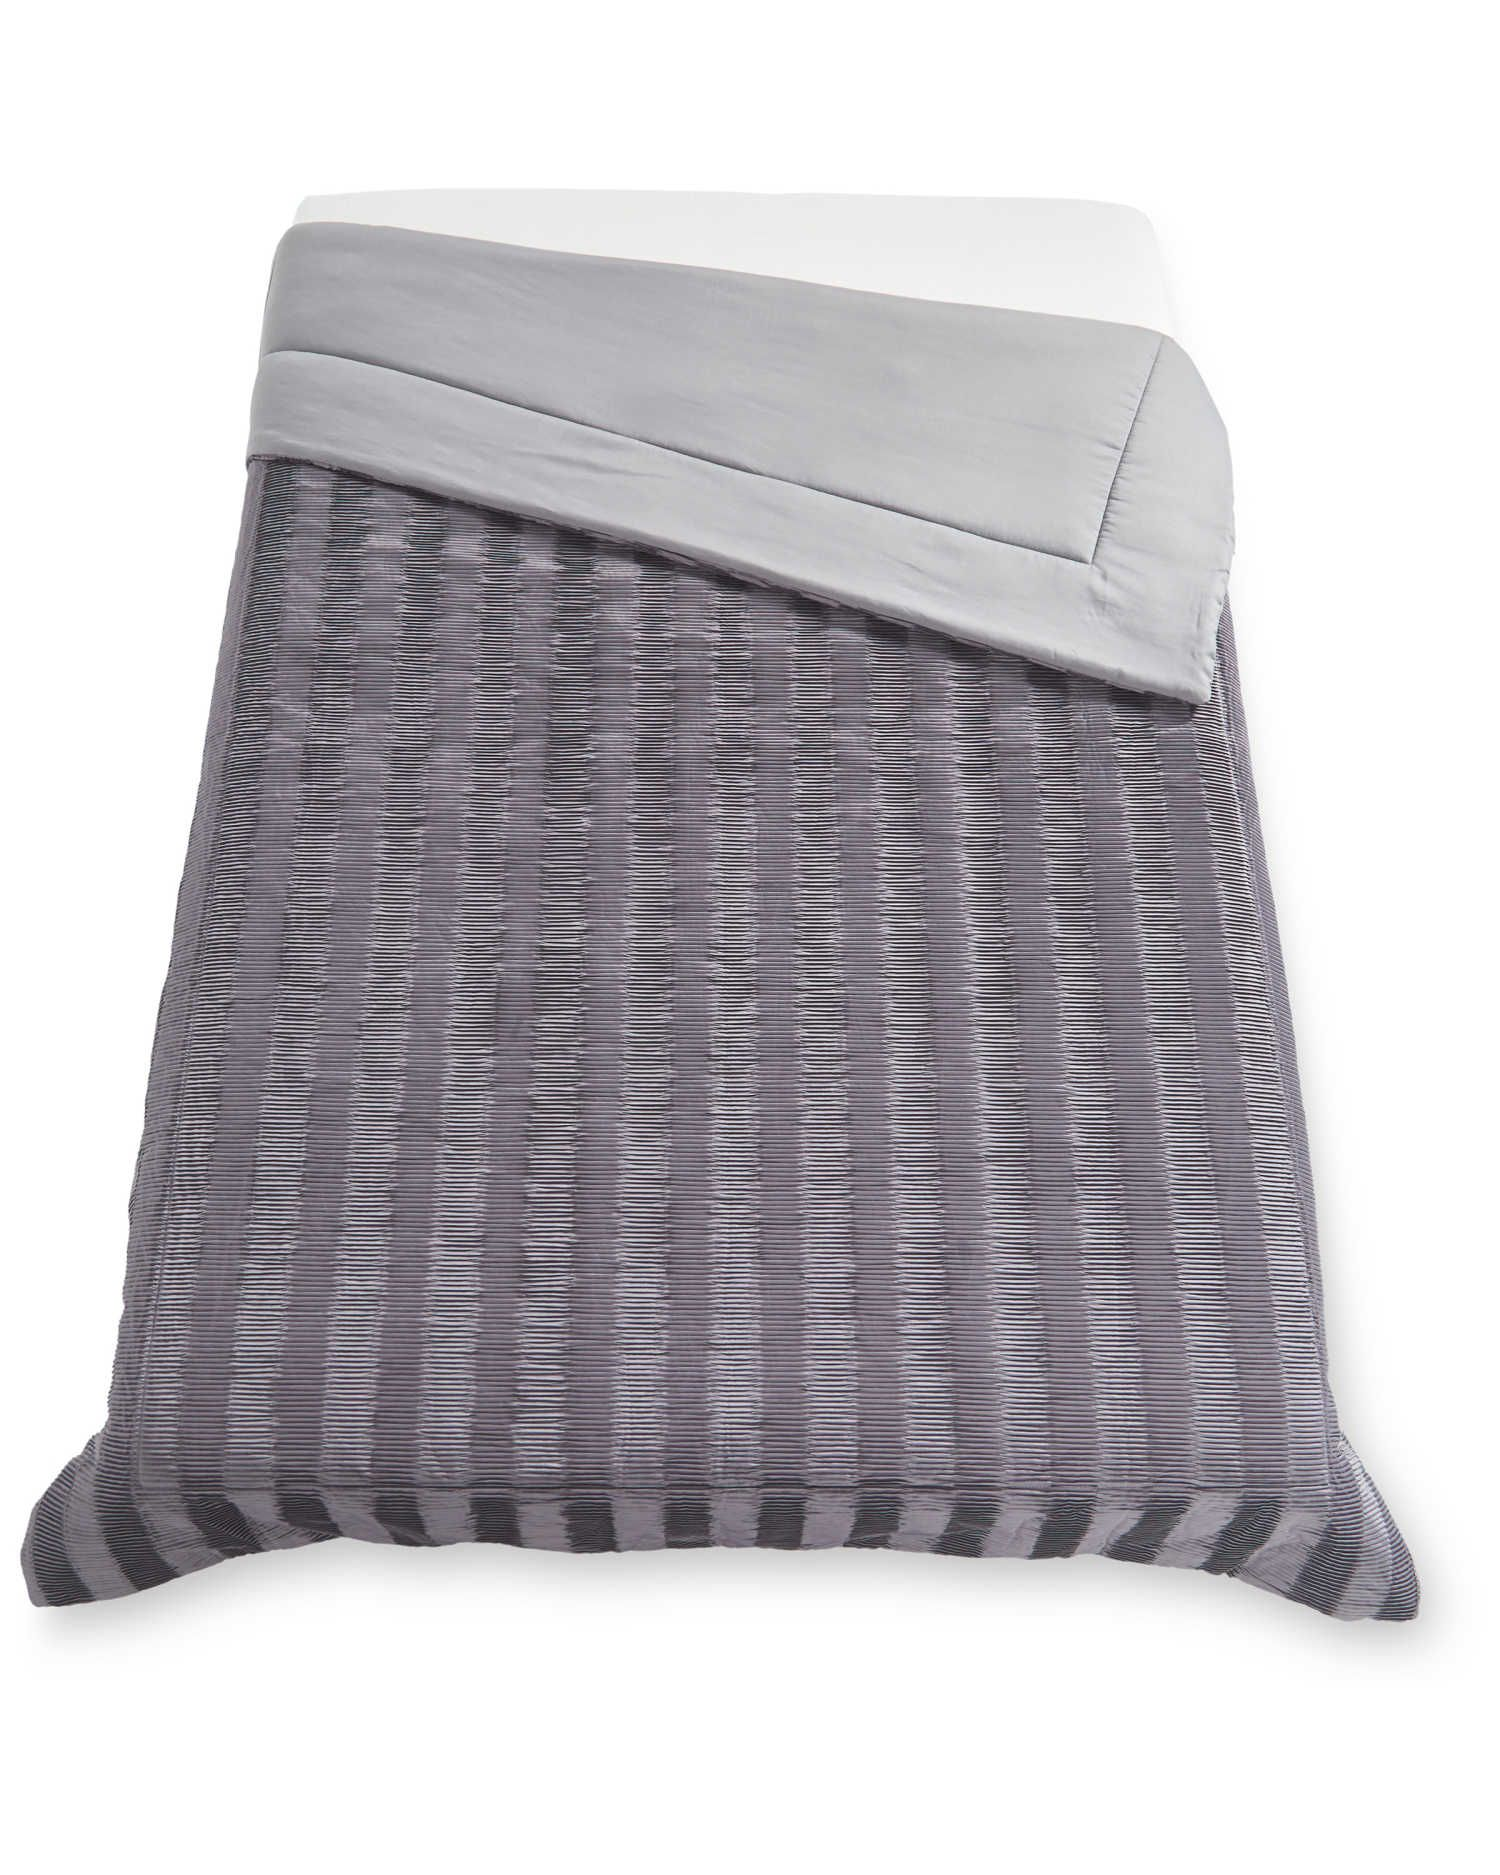 Kirkton House Pleated Bedspread Bed spreads, House